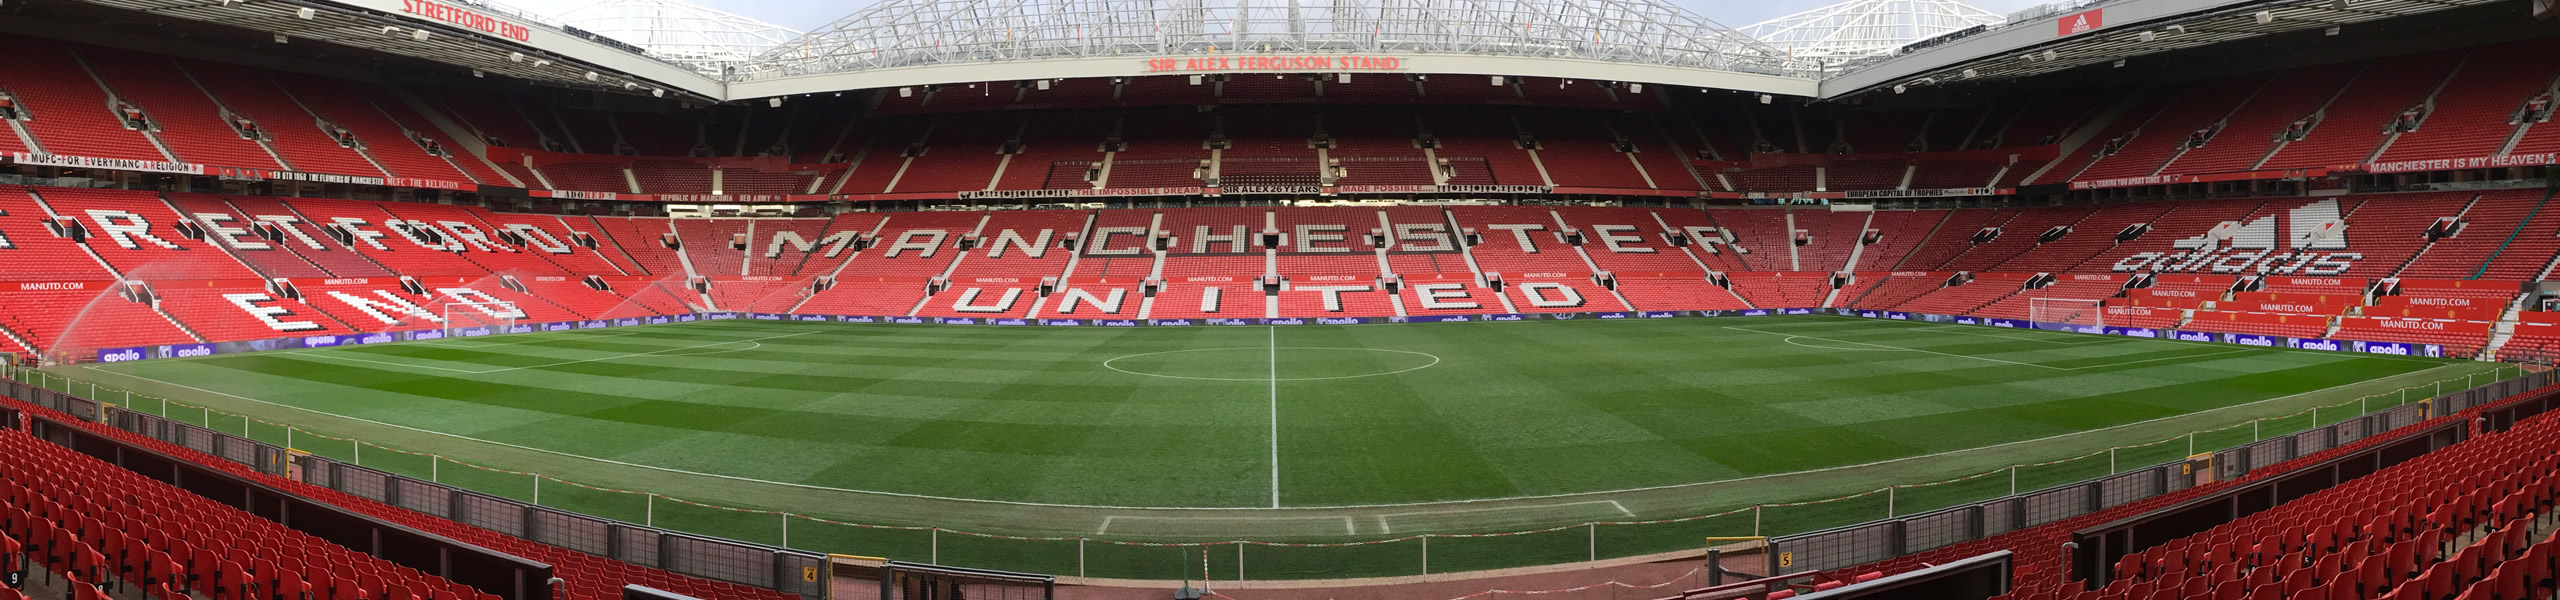 old_trafford_homepage